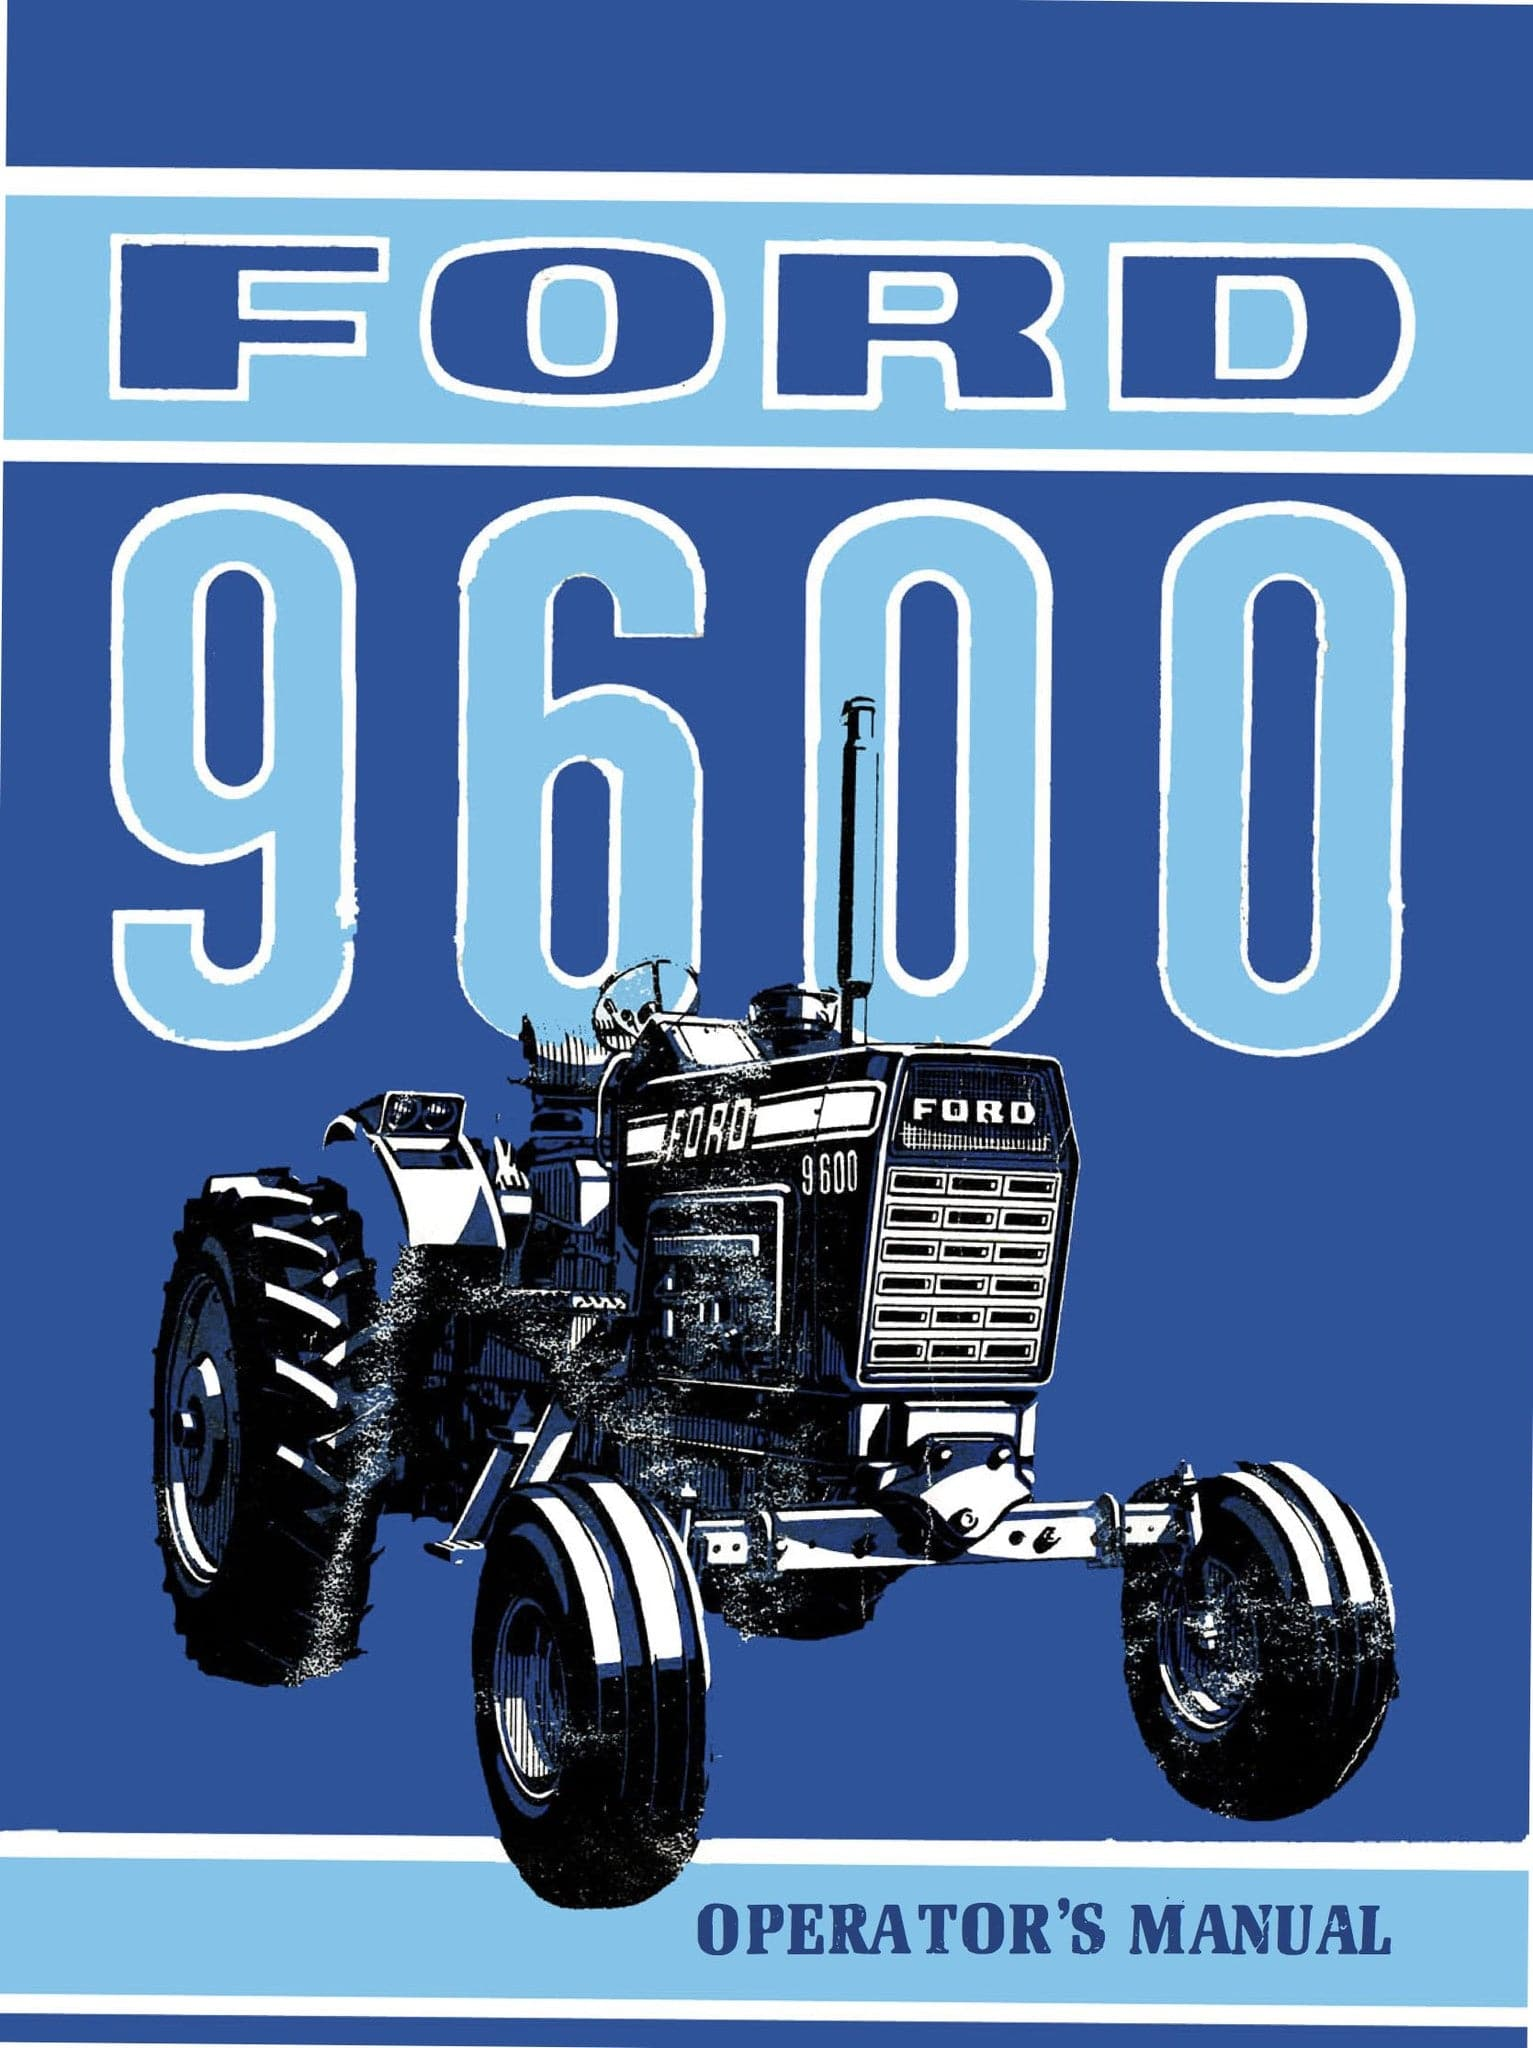 Ford_9600_Tractor_Operator_Manual_1.jpg?v=1462479537